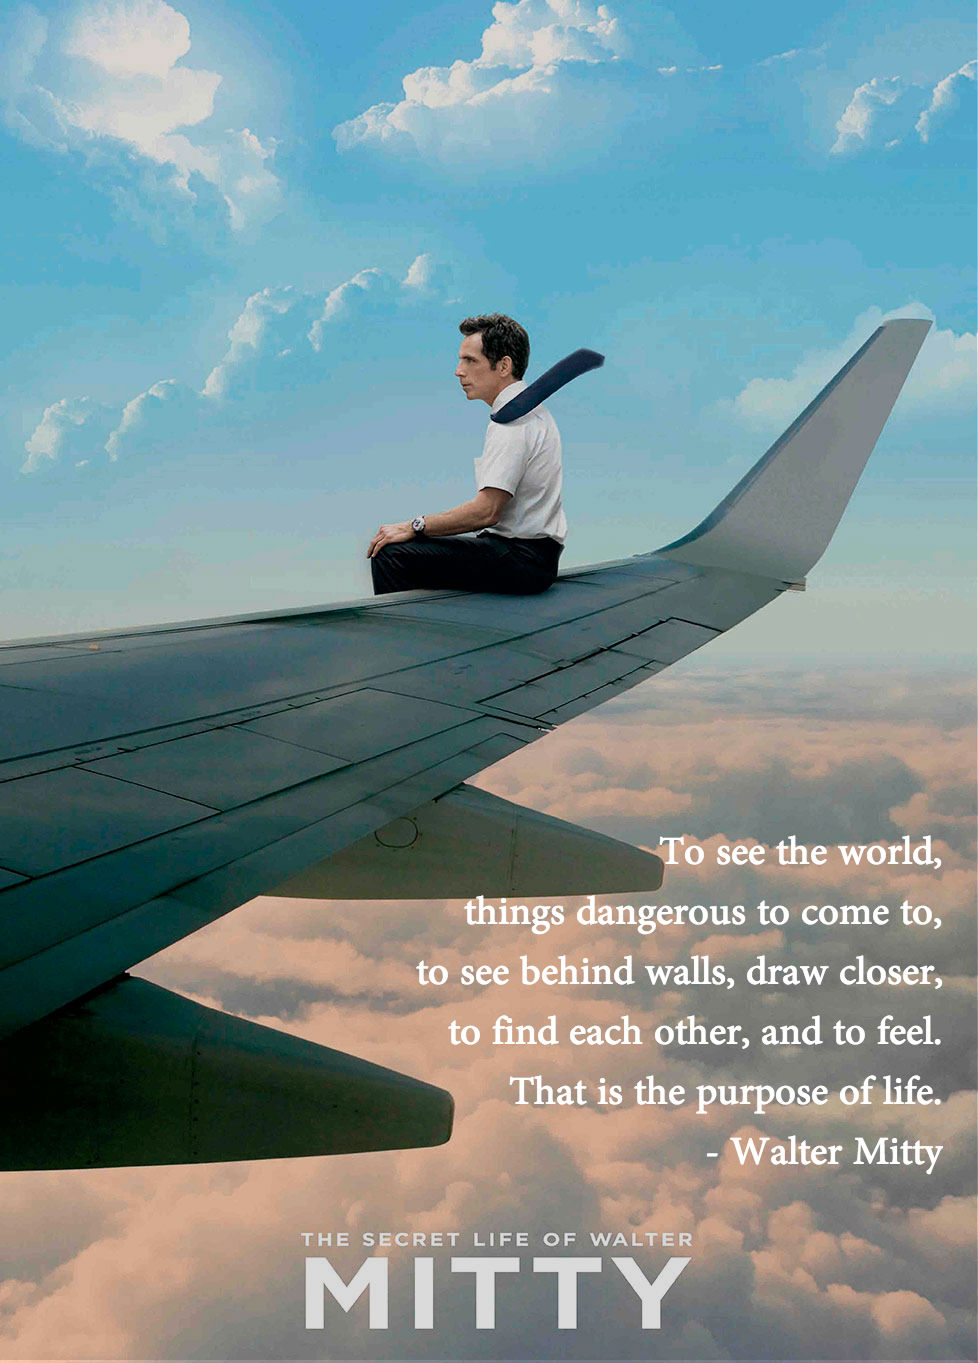 Life Purpose Quotes Quotes From The Secret Life Of Walter Mitty  Soa Inspired